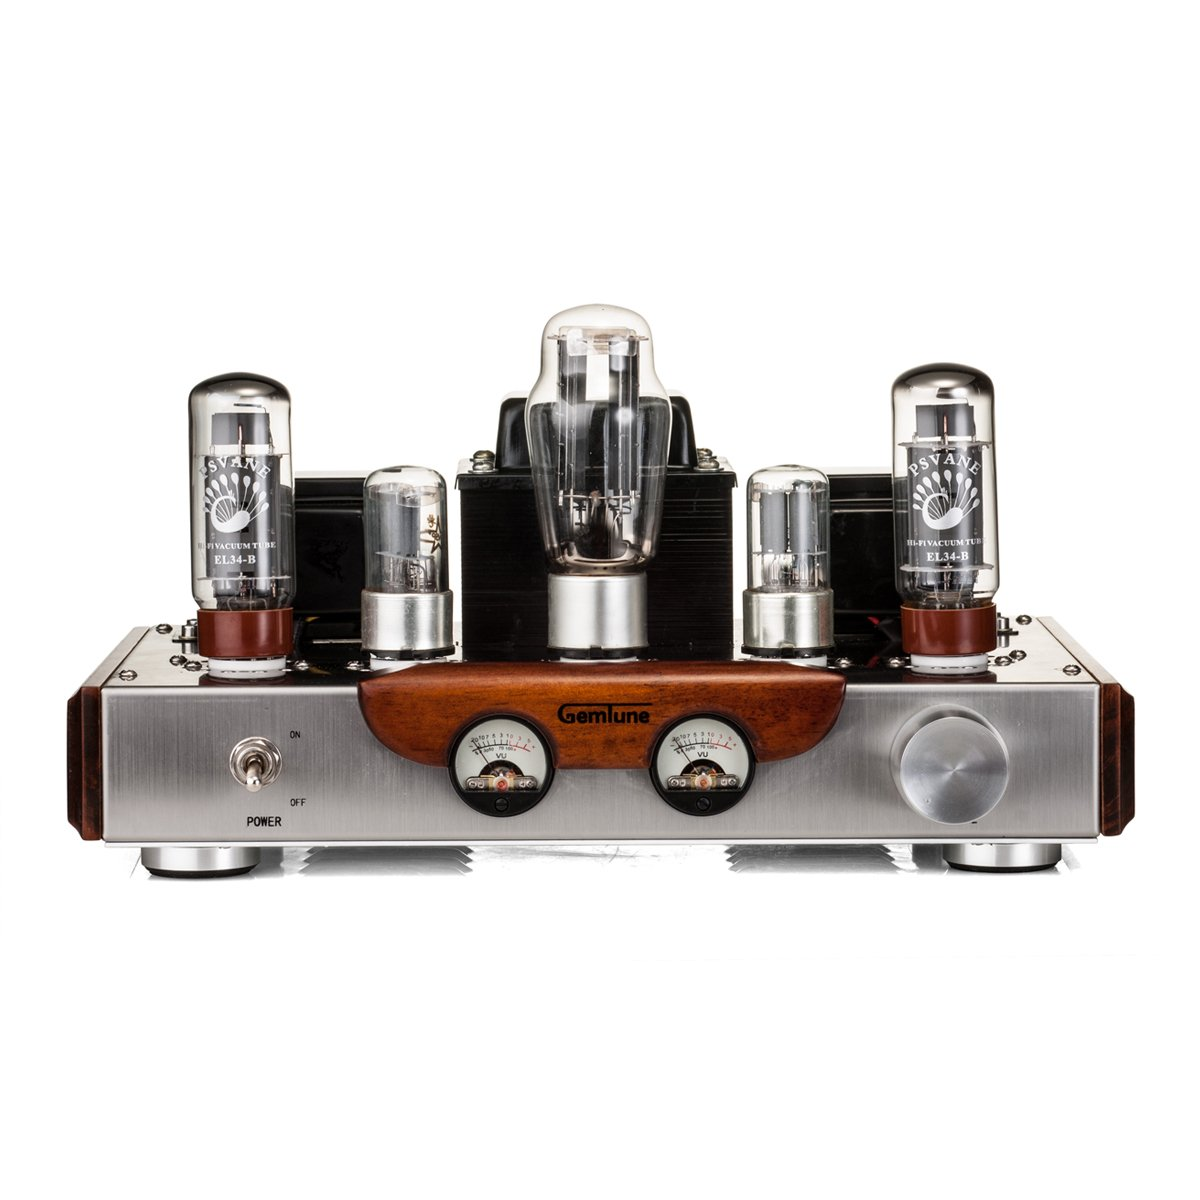 GemTune GS-01 Class A Integrated Hi-Fi Tube Amplifier with Tubes, EL34BX2 ,6N9PX2 ,5AR4X1